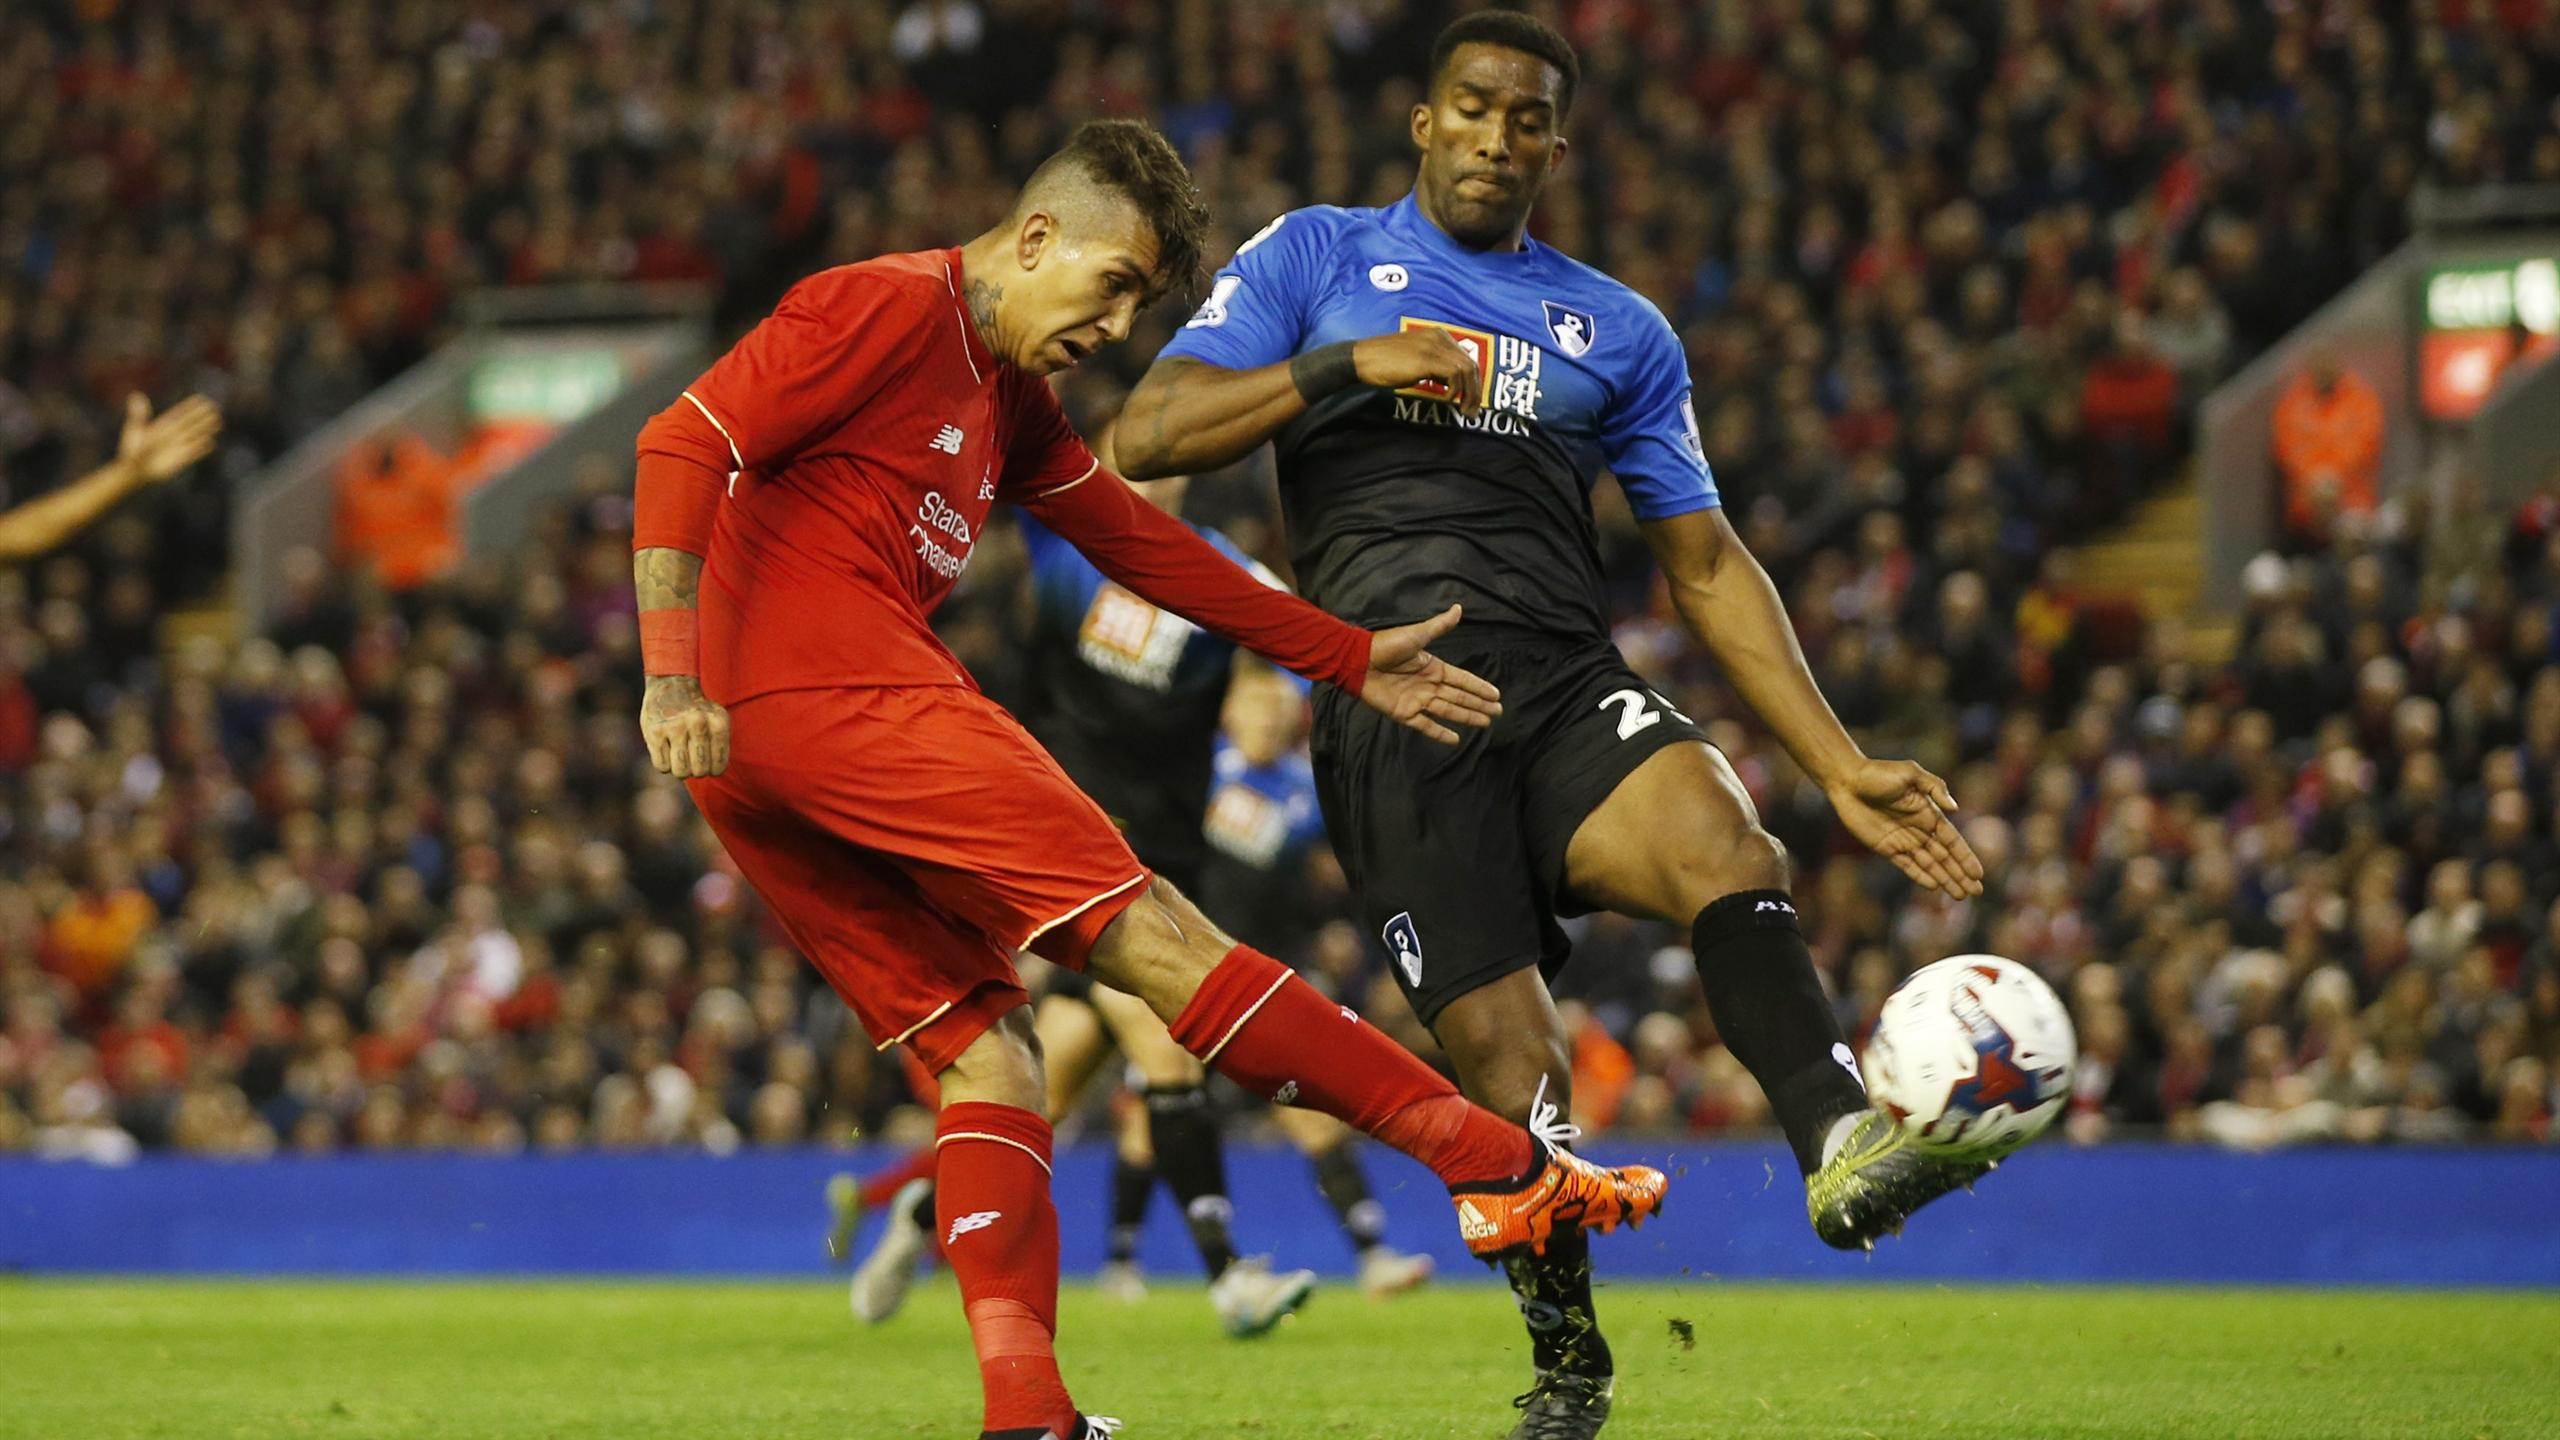 Liverpool's Roberto Firmino gets a shot off as Sylvain Distin challenges